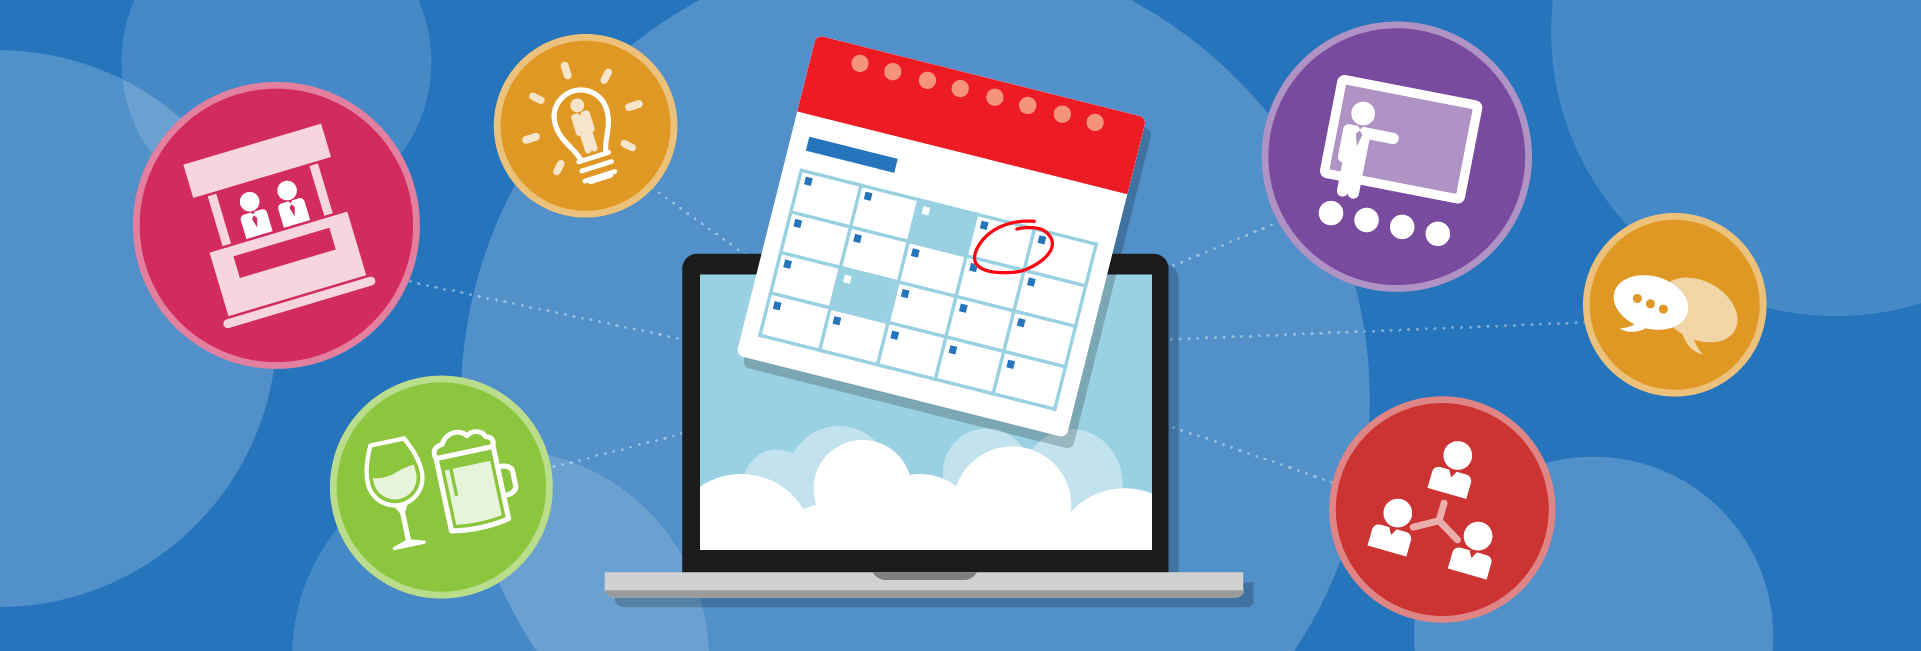 WSCAI Page Header Image - Events